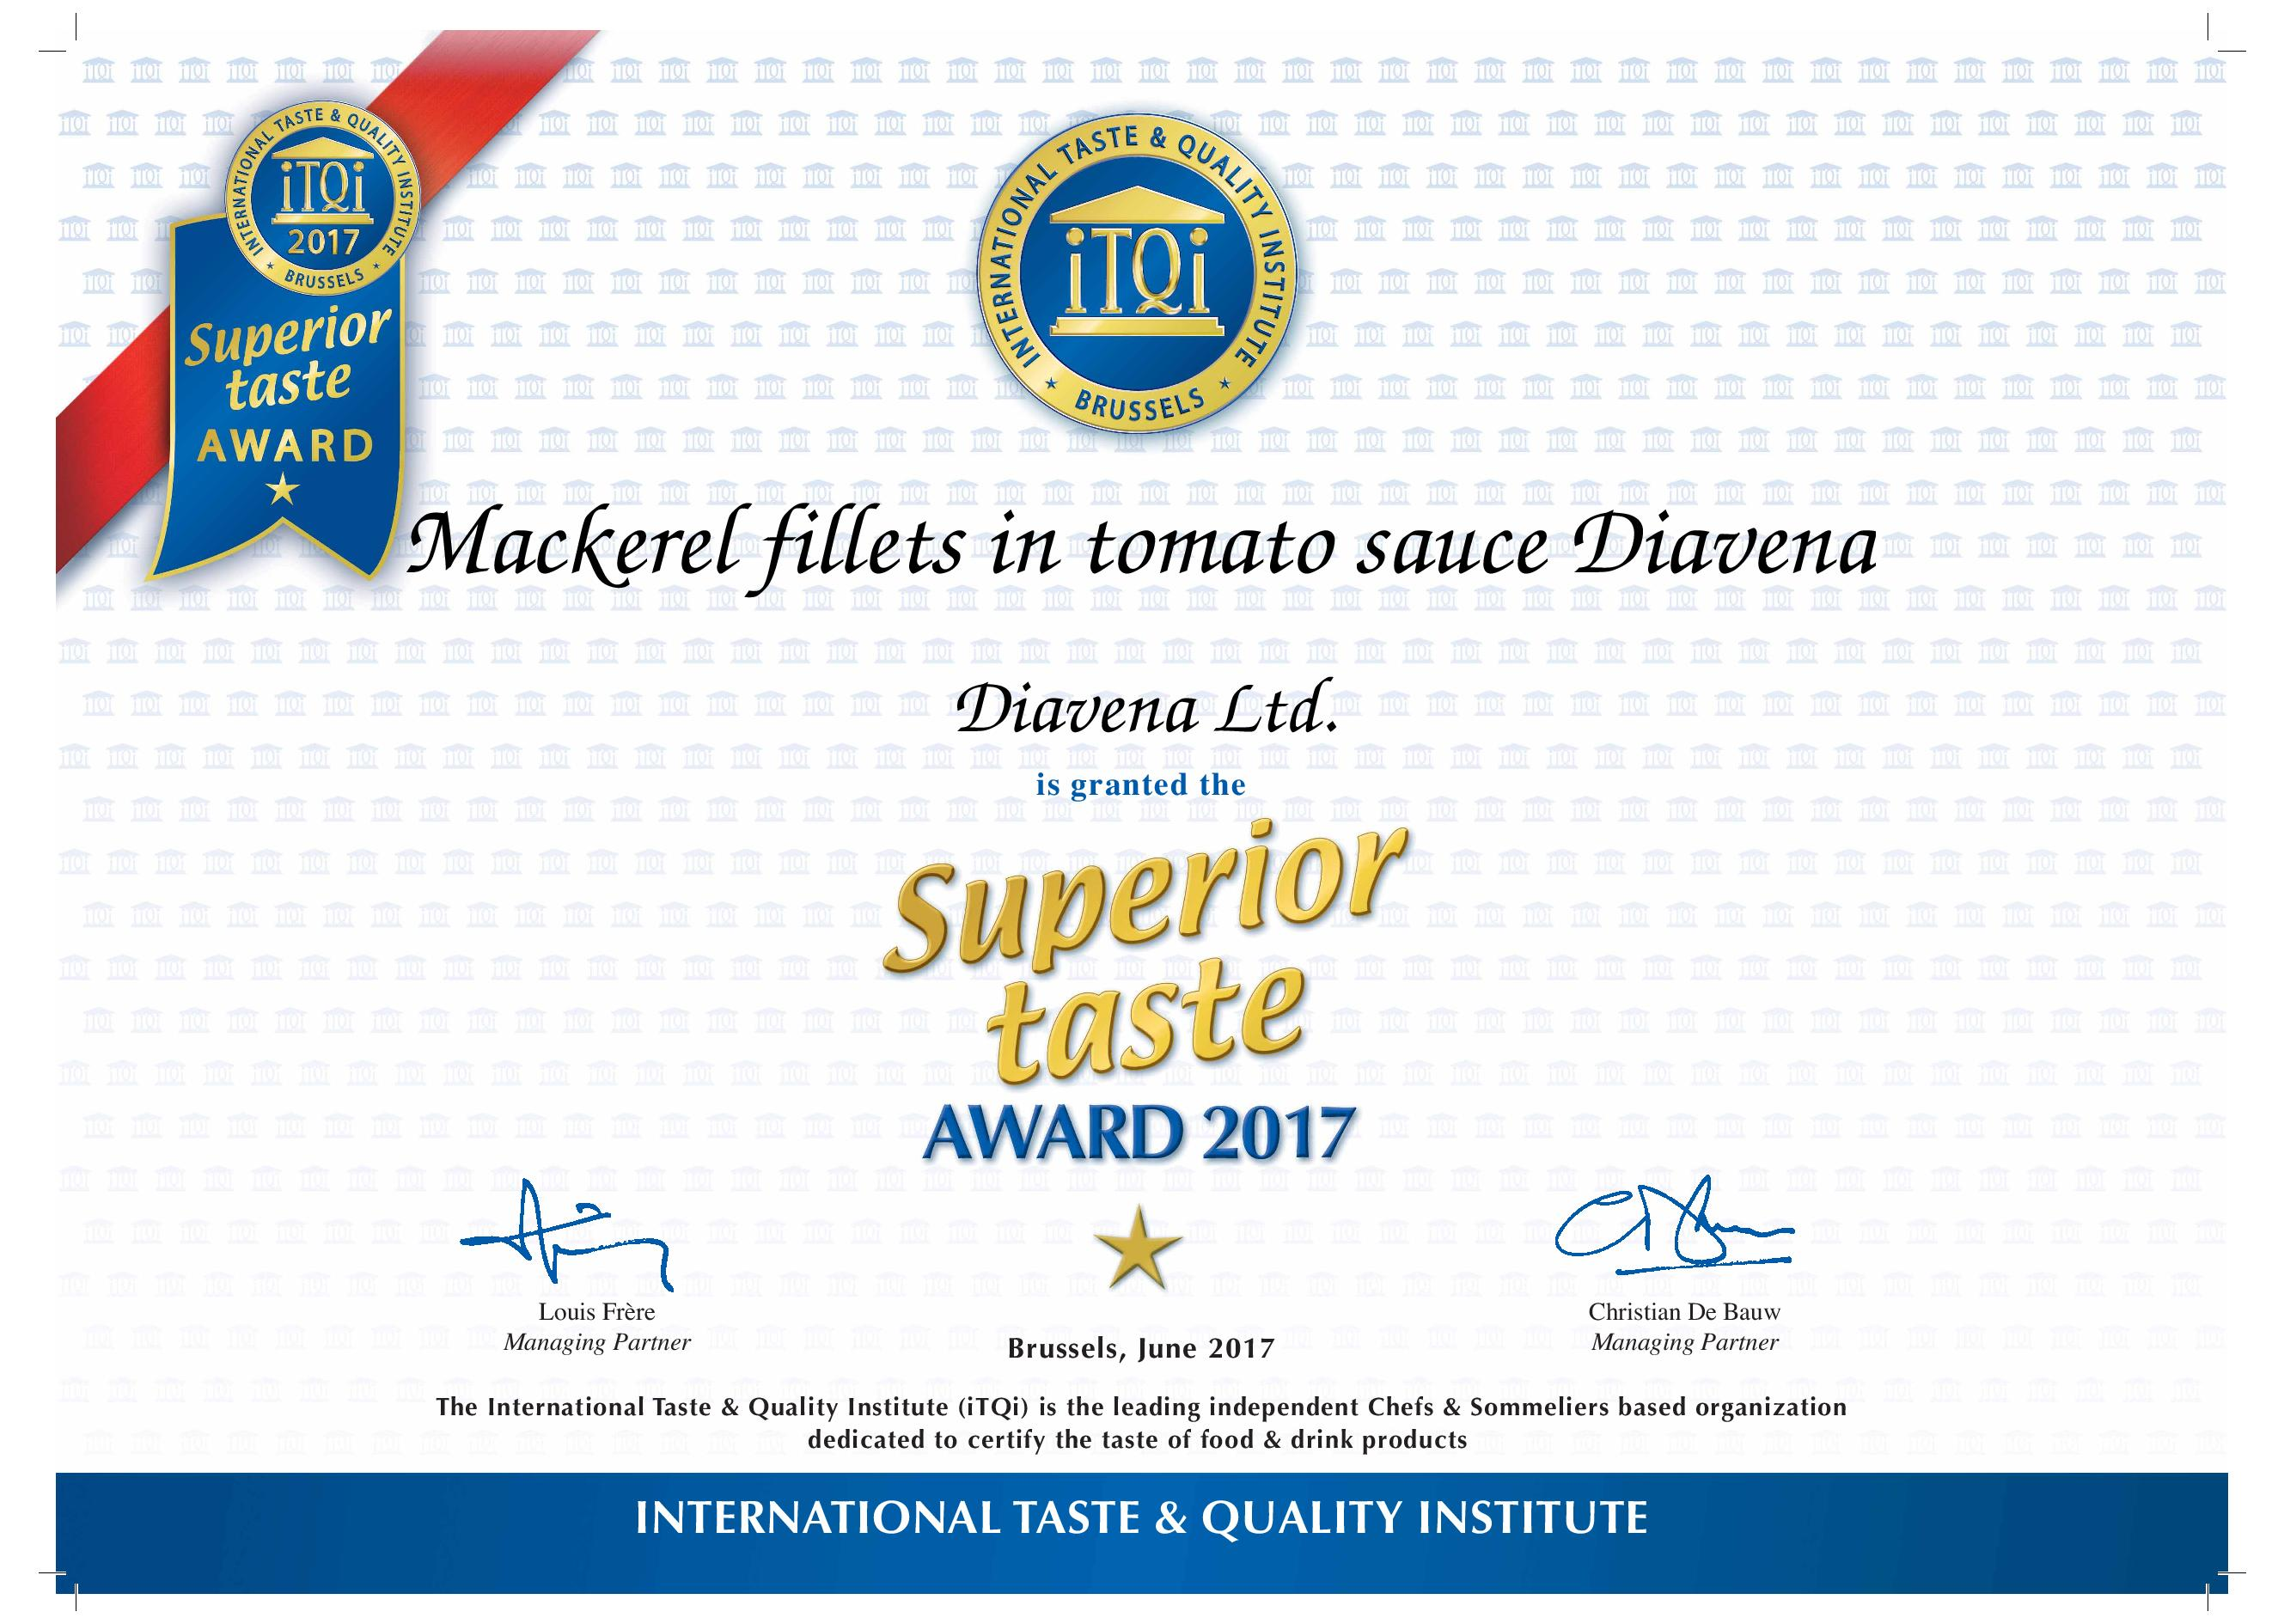 Mackerel fillets in tomato sauce Diavena - Superior taste award - 1 Golden Star